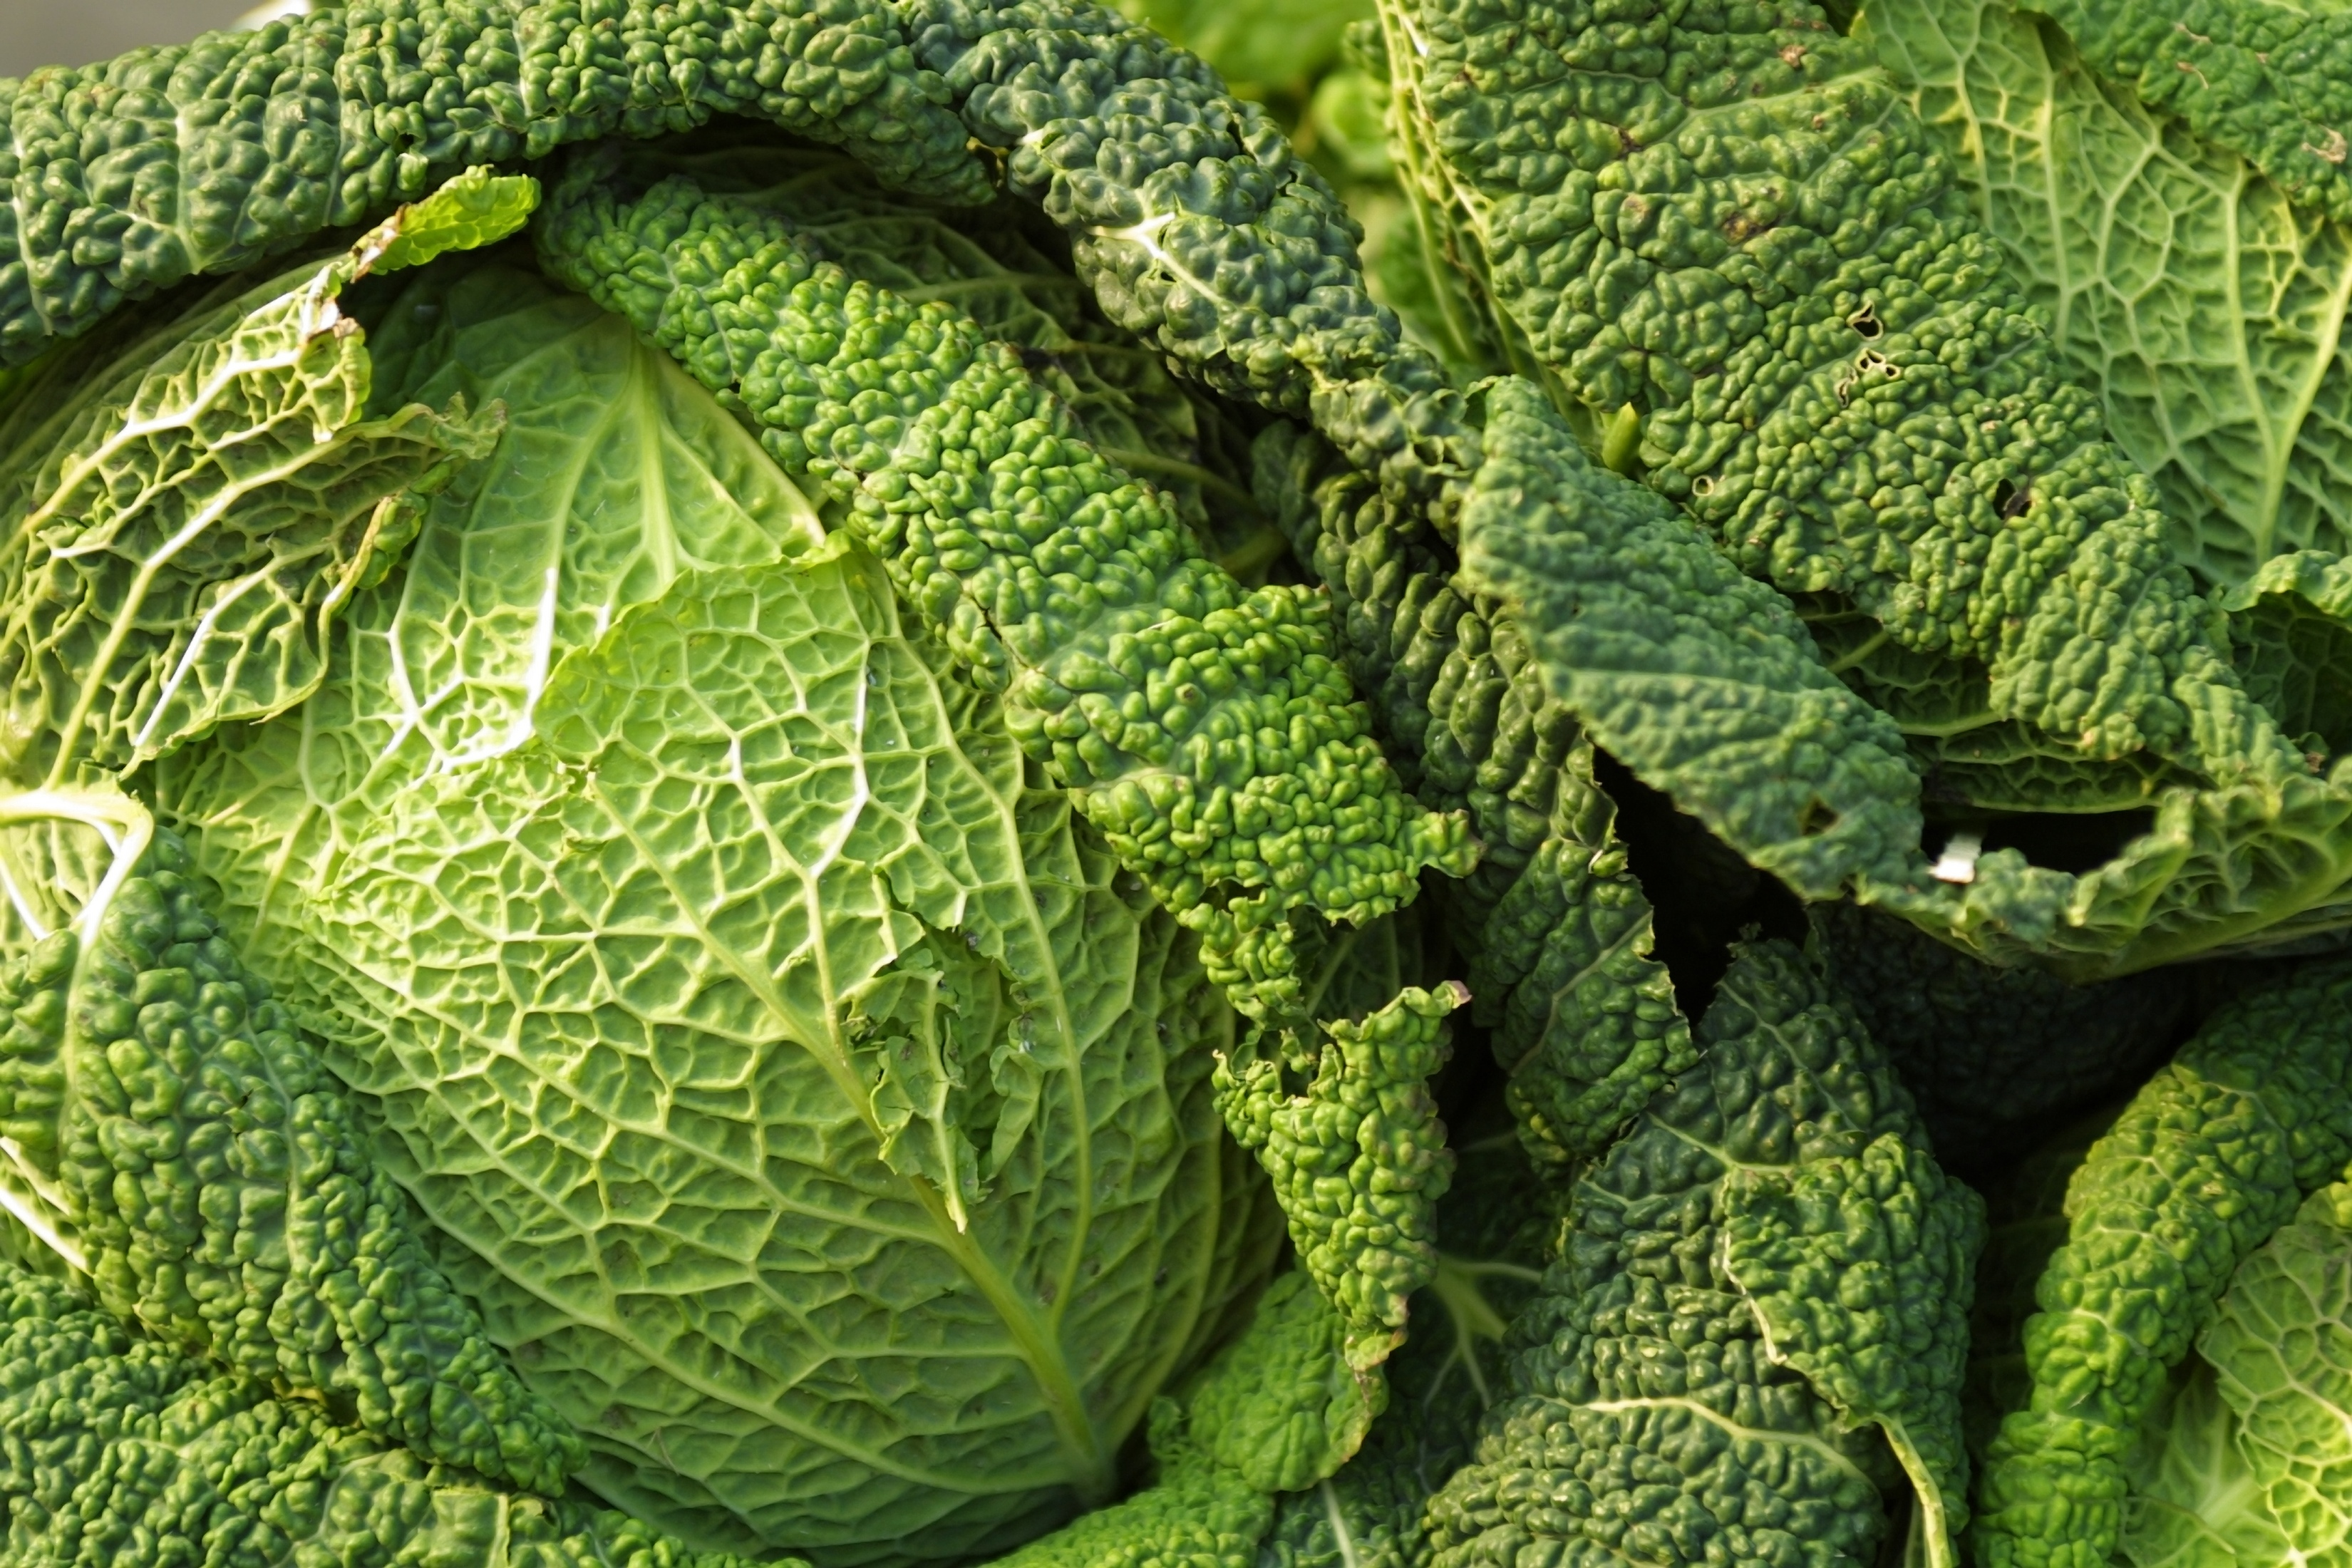 Cabbage contains plenty of fiber and nutrients.